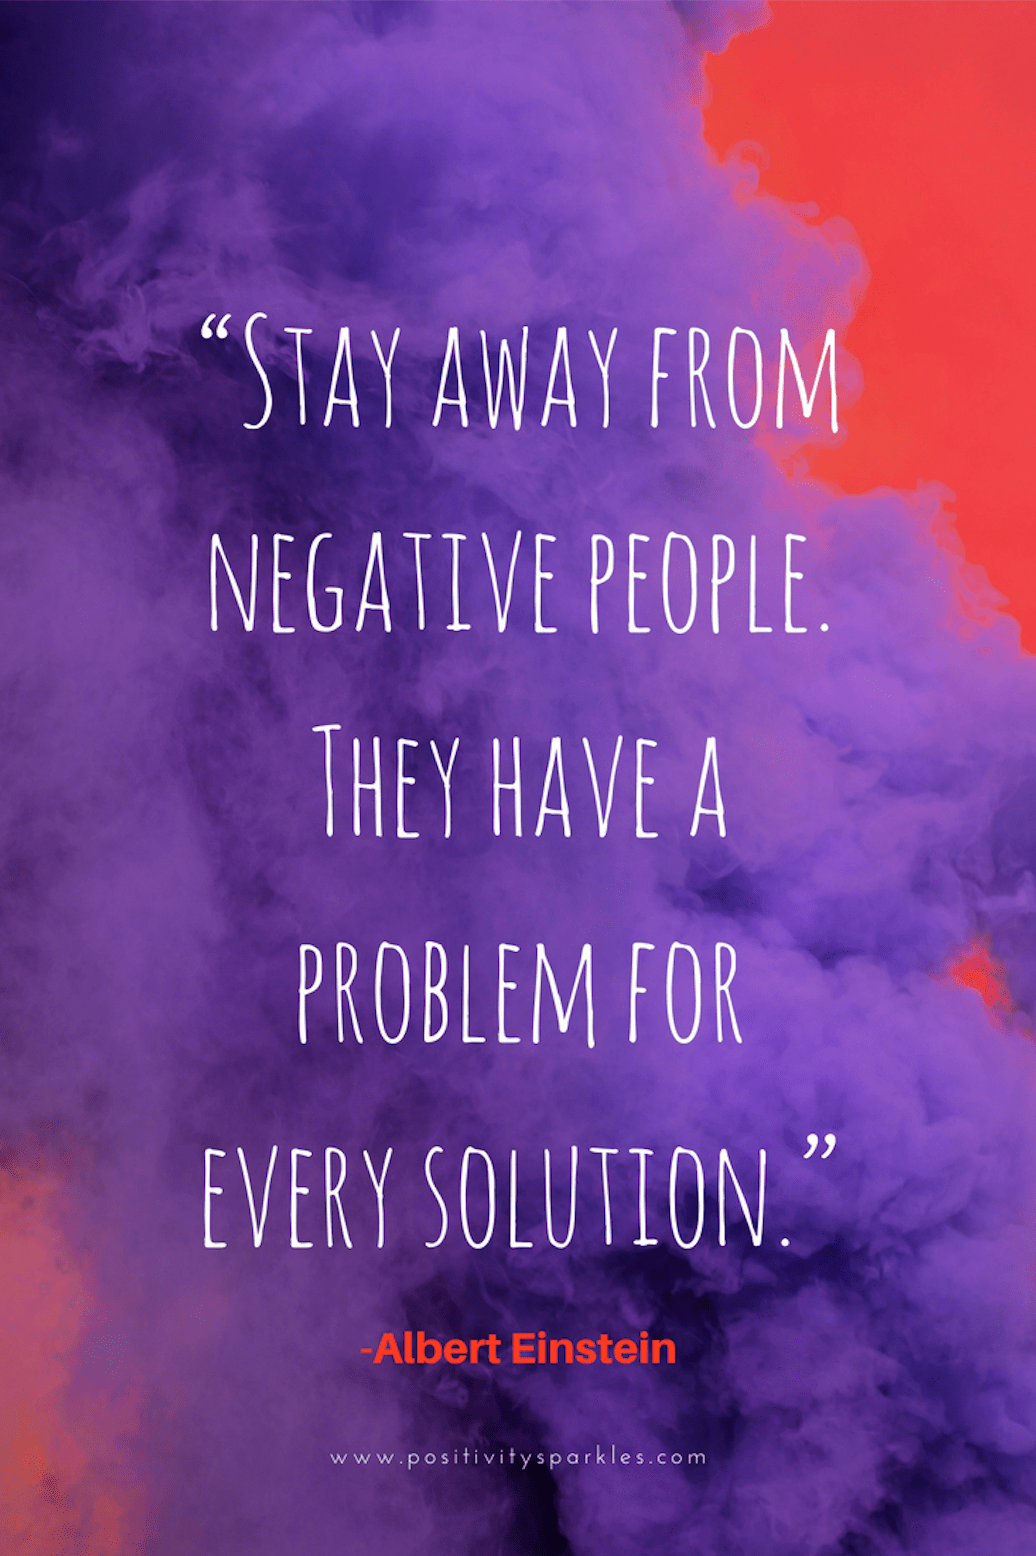 Stay Away From Negative People They Have A Problem For Every Solution Albert Einstein Positivity Sparkles Negative People Quotes Negativity Quotes Life Quotes